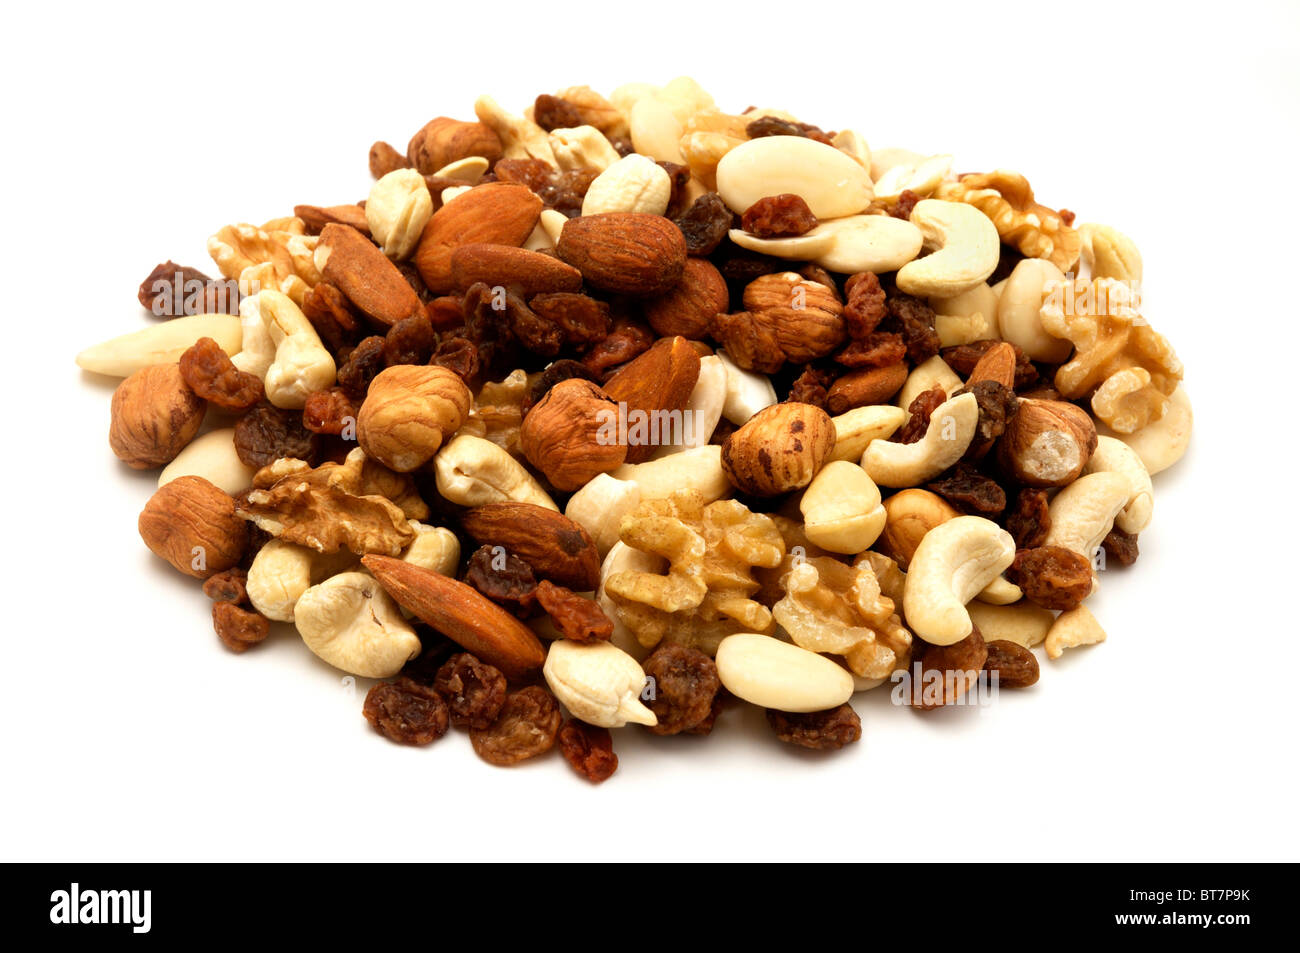 Trail mix on a white background - Stock Image